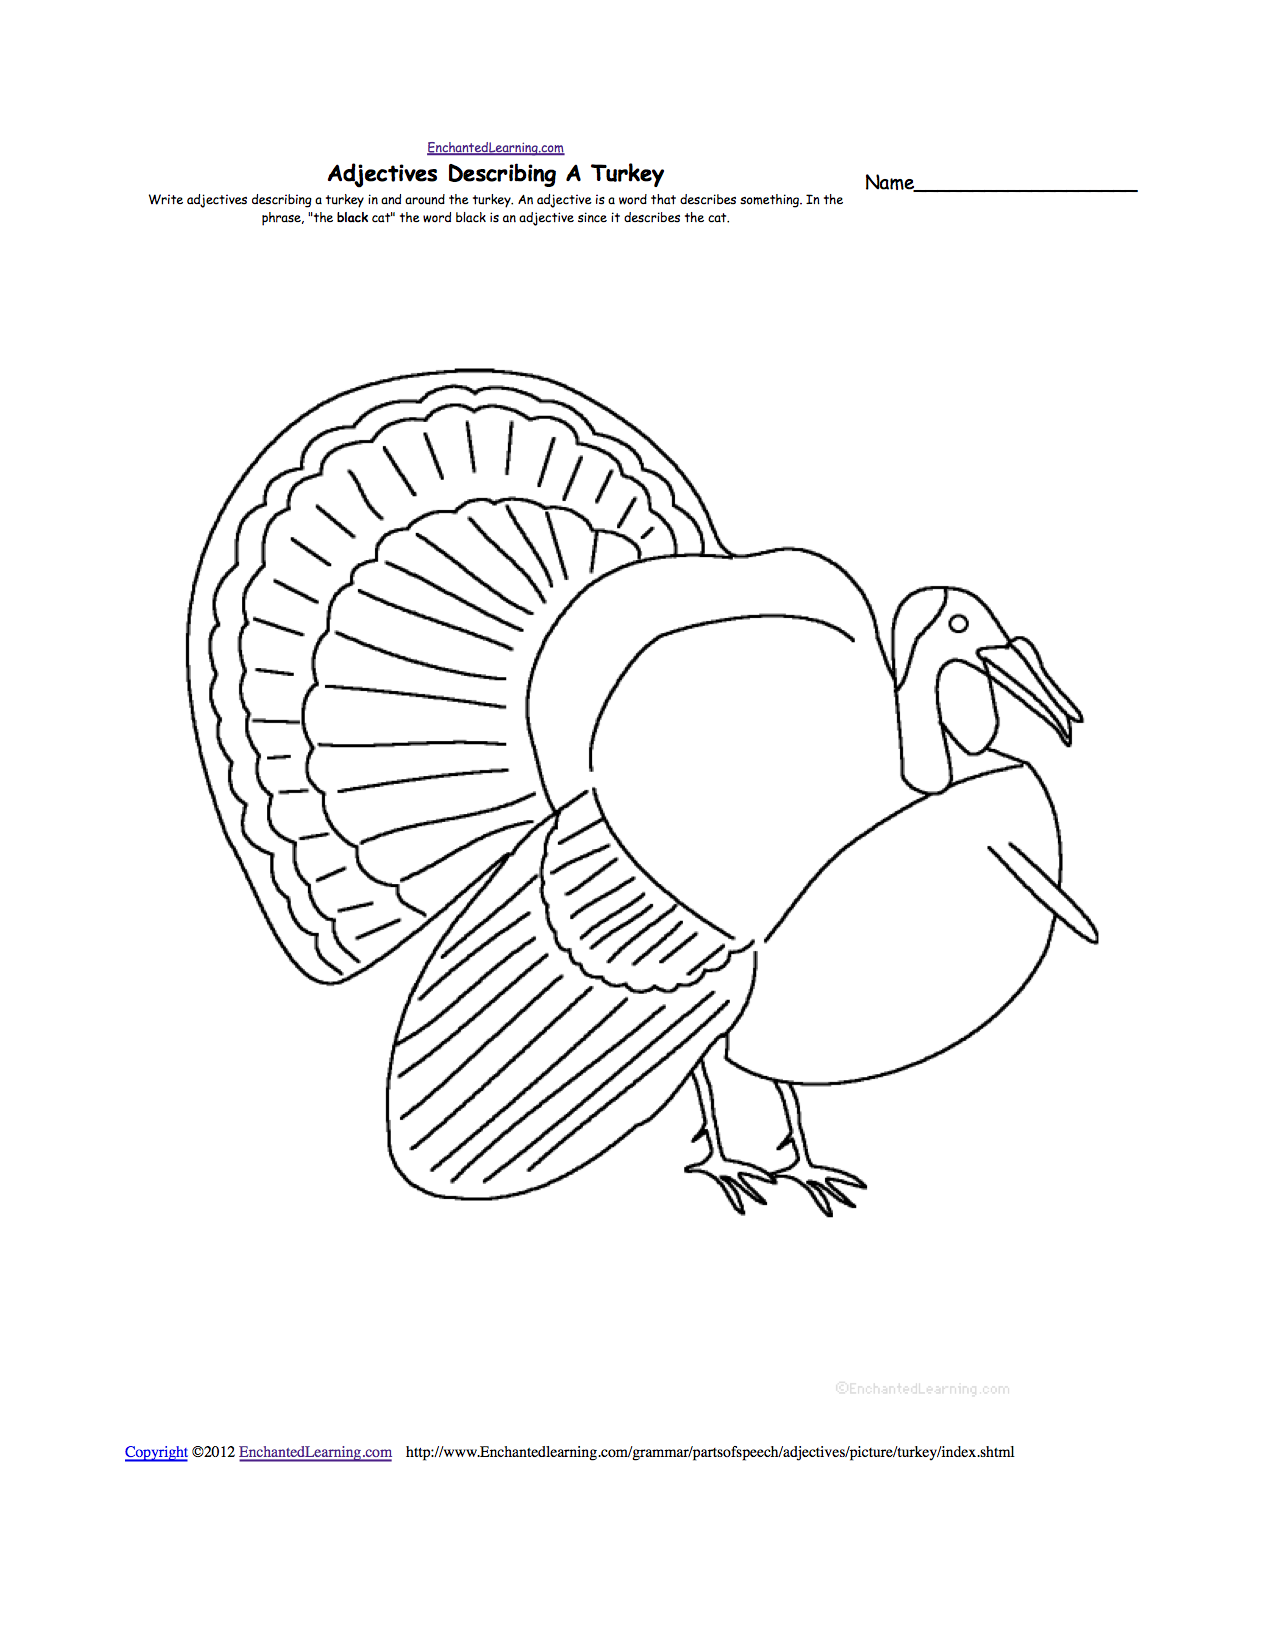 Adjectives Describing A Turkey